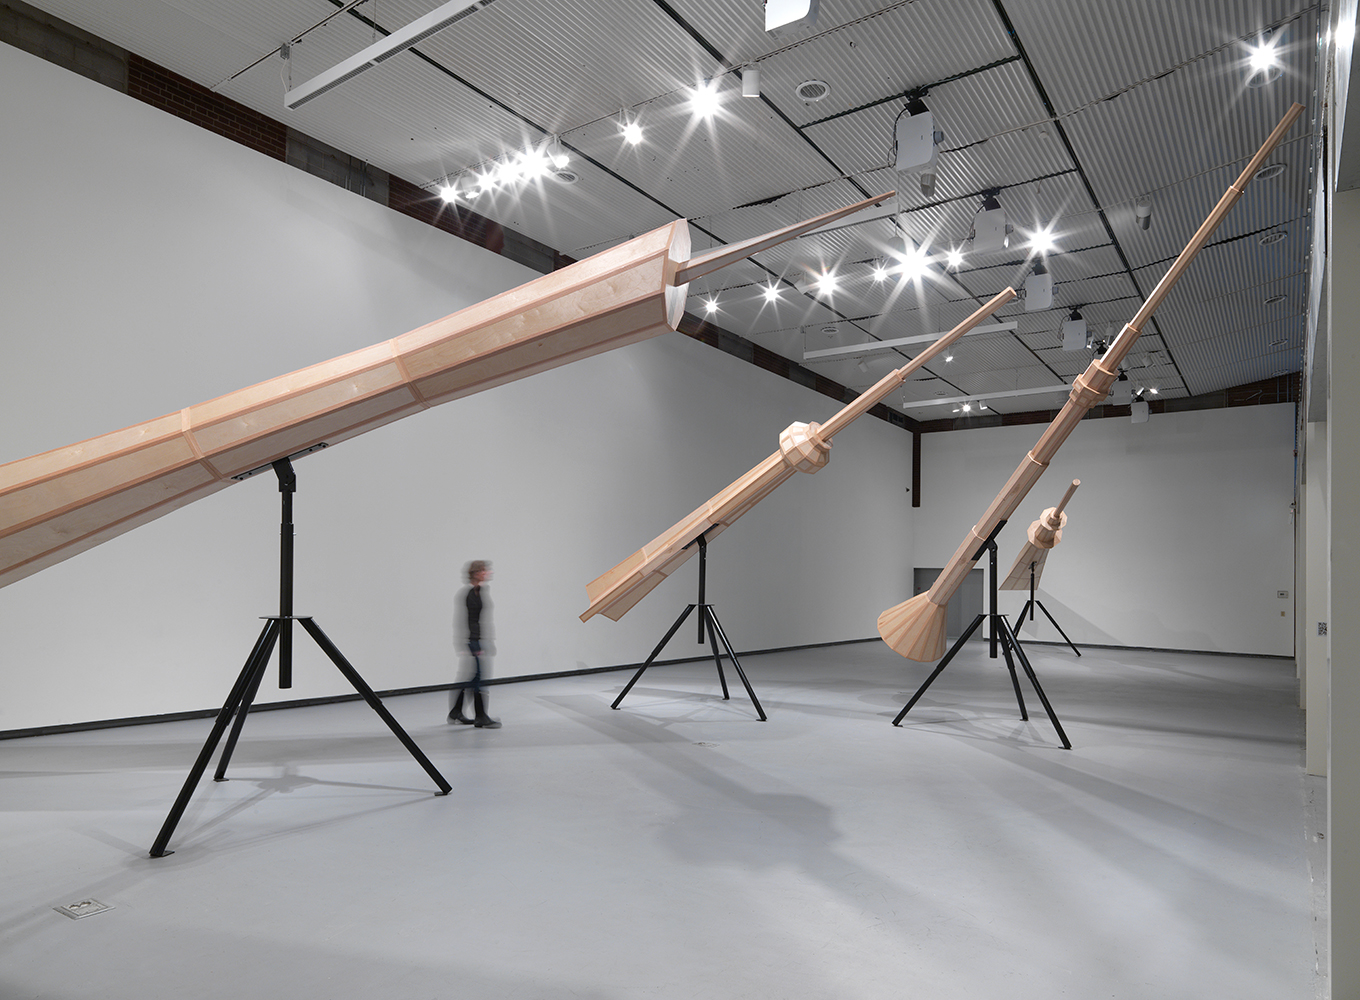 Scenic Overlook  by Susan Giles at the Hyde Park Art Center; Chicago, IL; 2014;  role: artist assistant, aided in fabrication and designed tripod stand